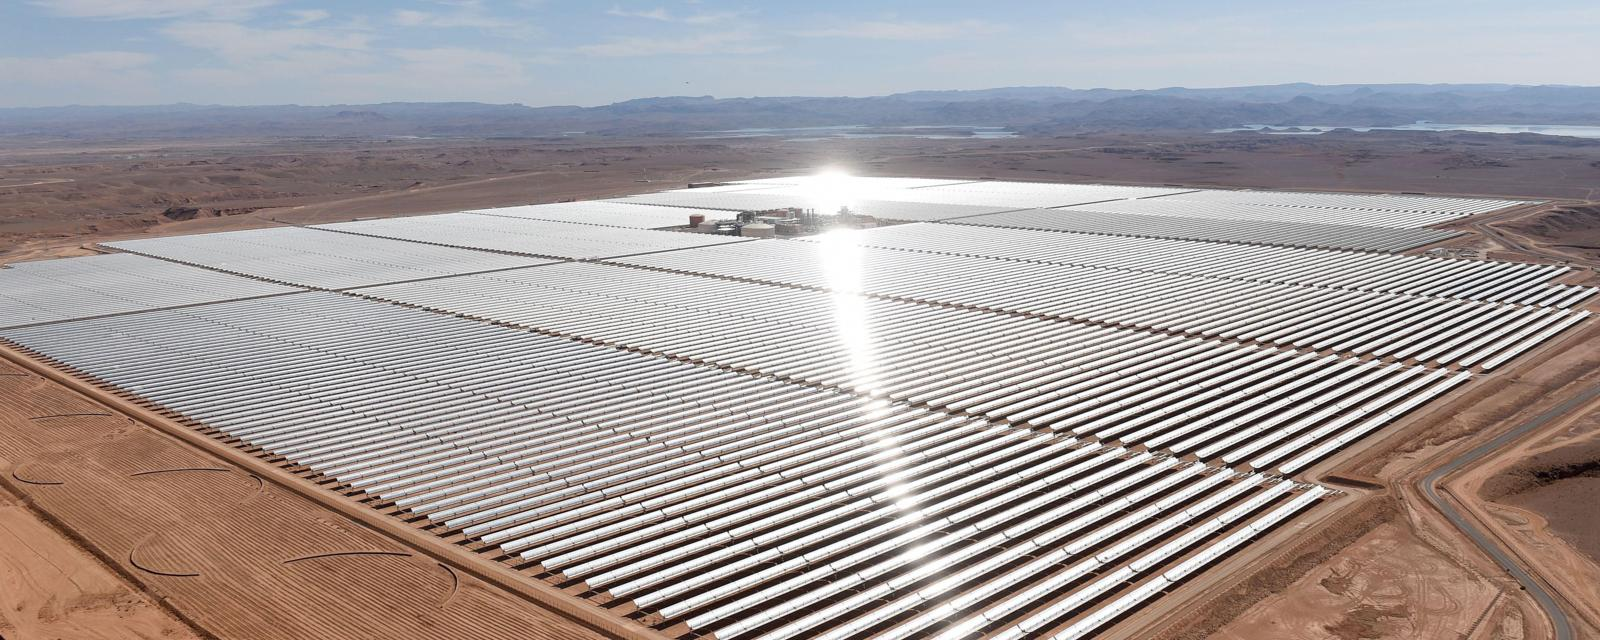 The colossal African solar farm that has been built in Morocco.